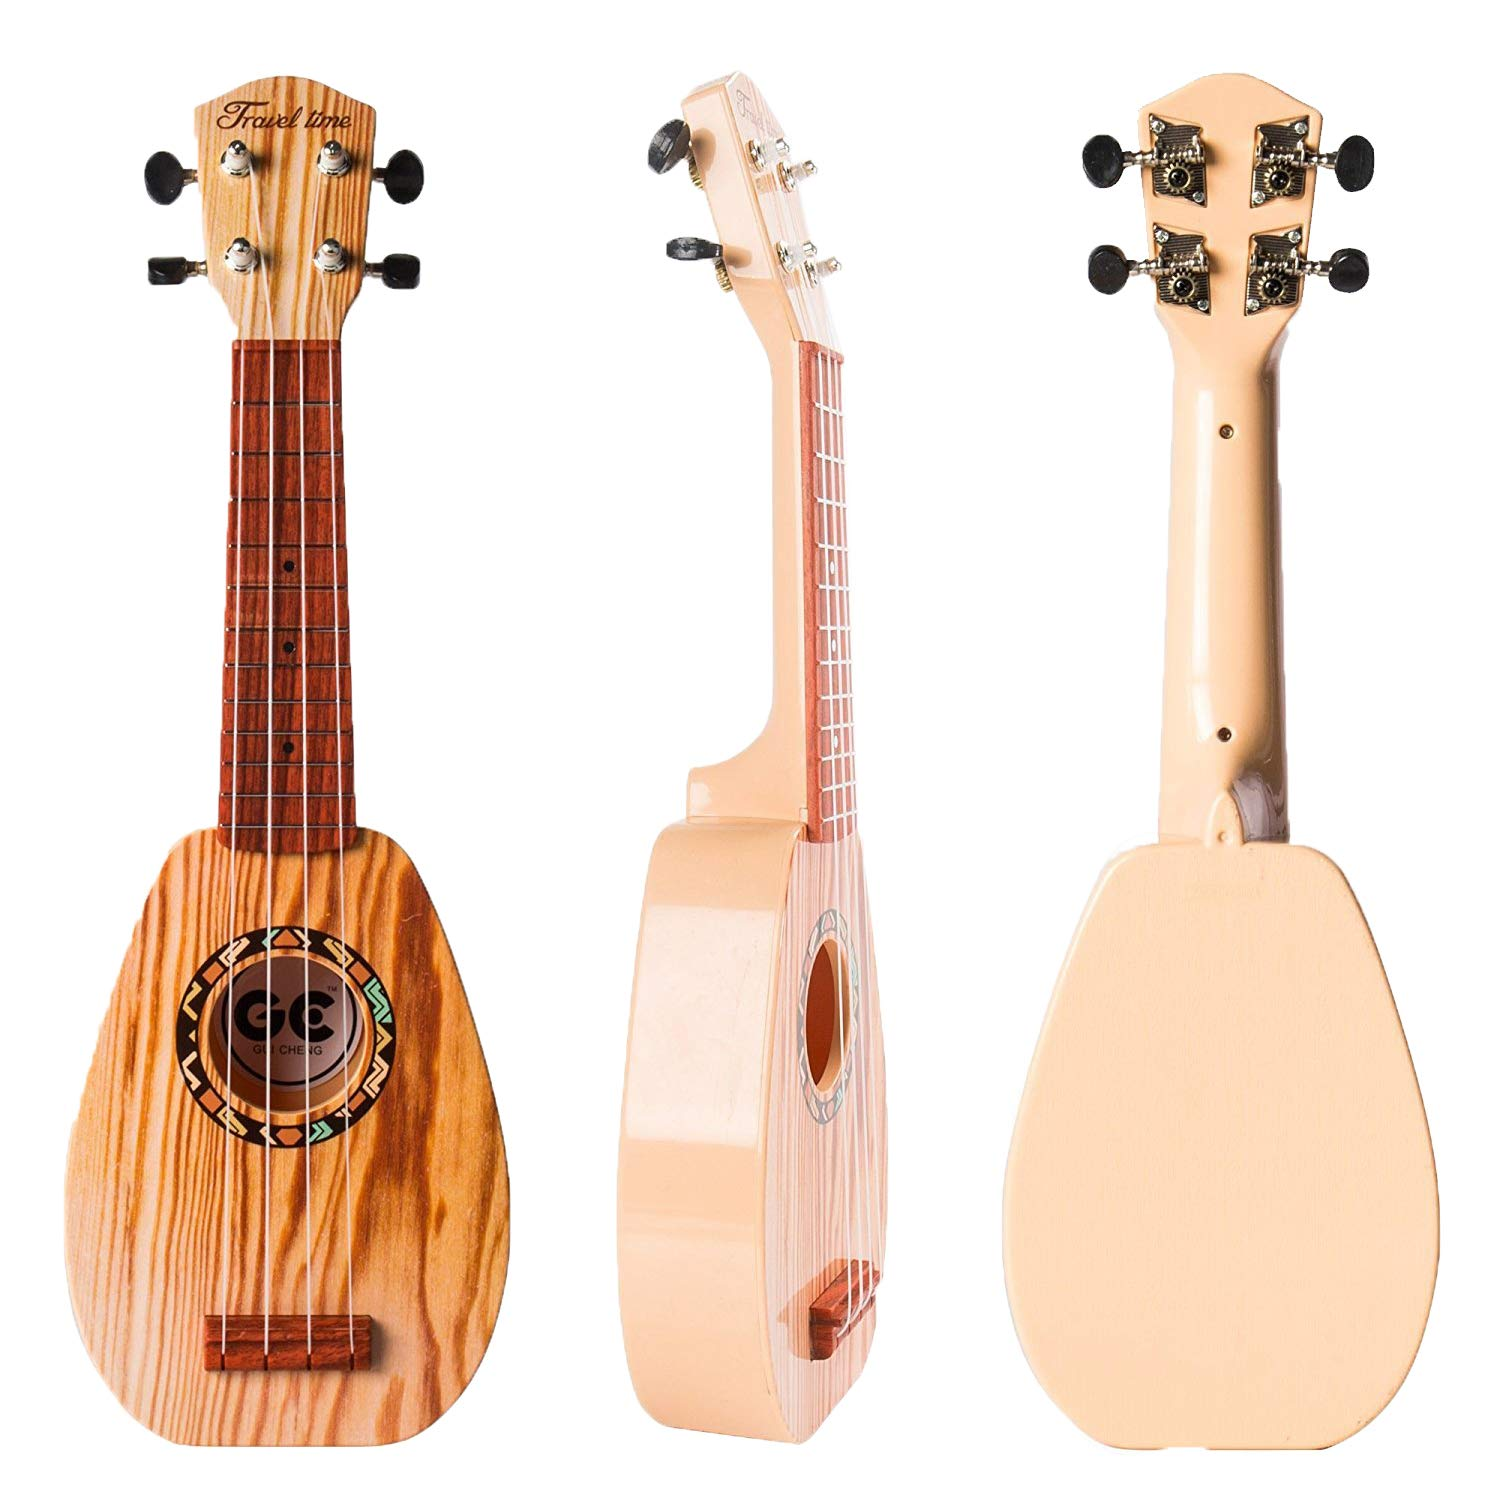 YOLOPLUS+ 17 Inch Kids Ukulele Guitar Toy 4 Strings Mini Children Musical Instruments Educational Learning Toy for Toddler Beginner Keep Tone Anti-Impact Can Play With Picks and Strap (17 Inch-1) by YOLOPLUS+